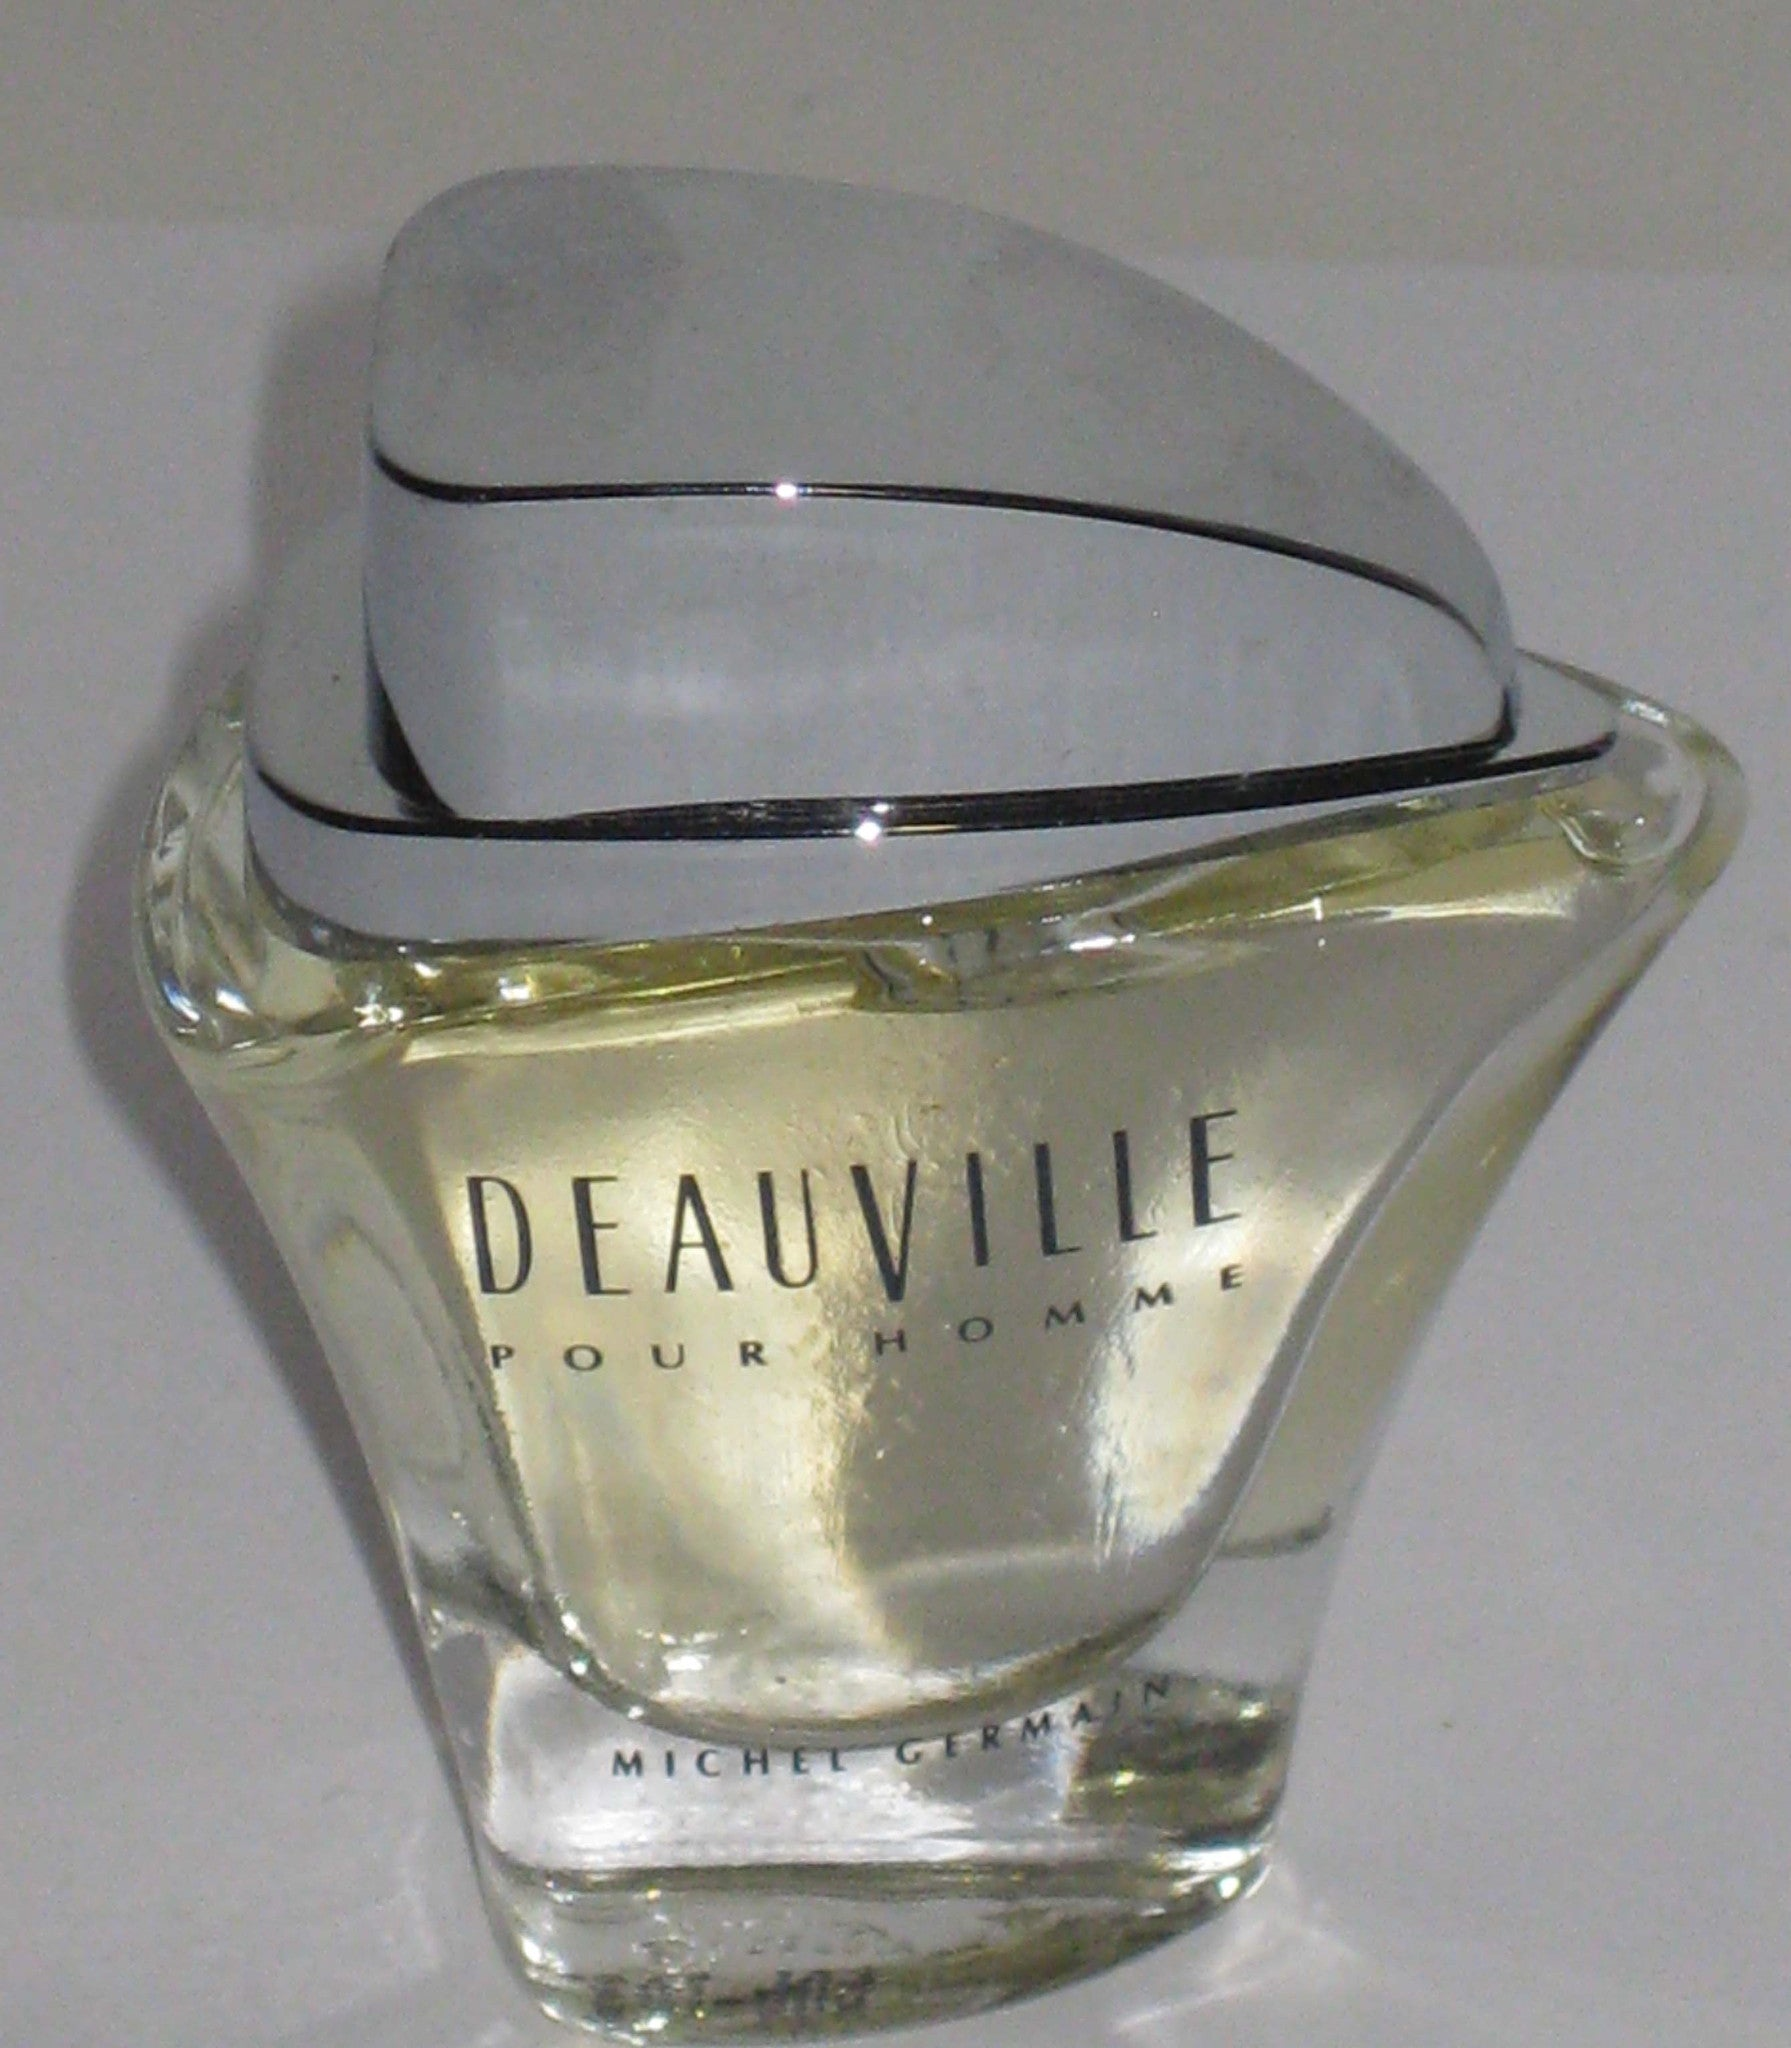 Michel Germain Deauville Eau De Toilette Mini